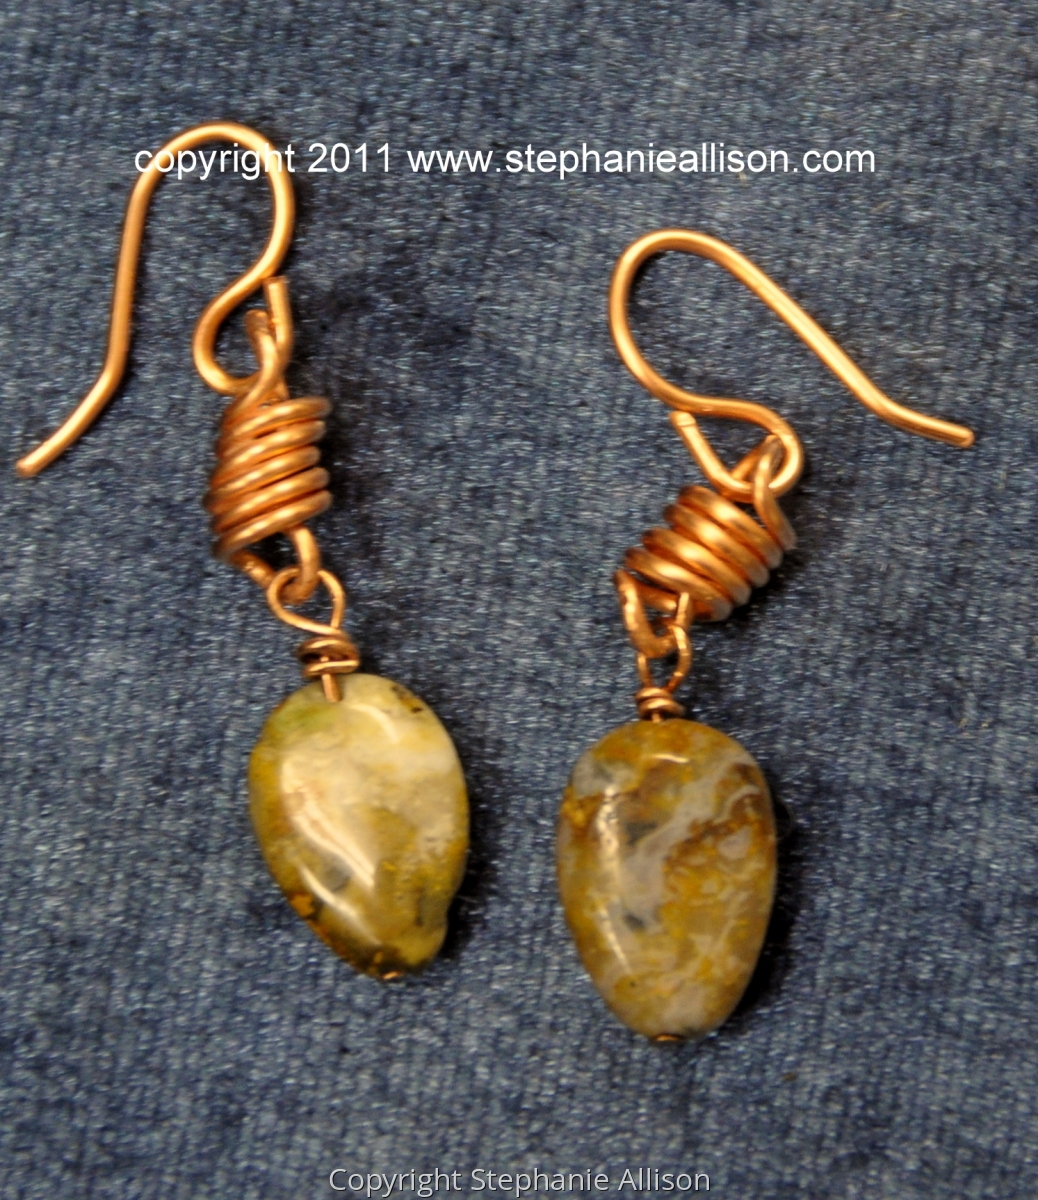 copper wire earrings (large view)